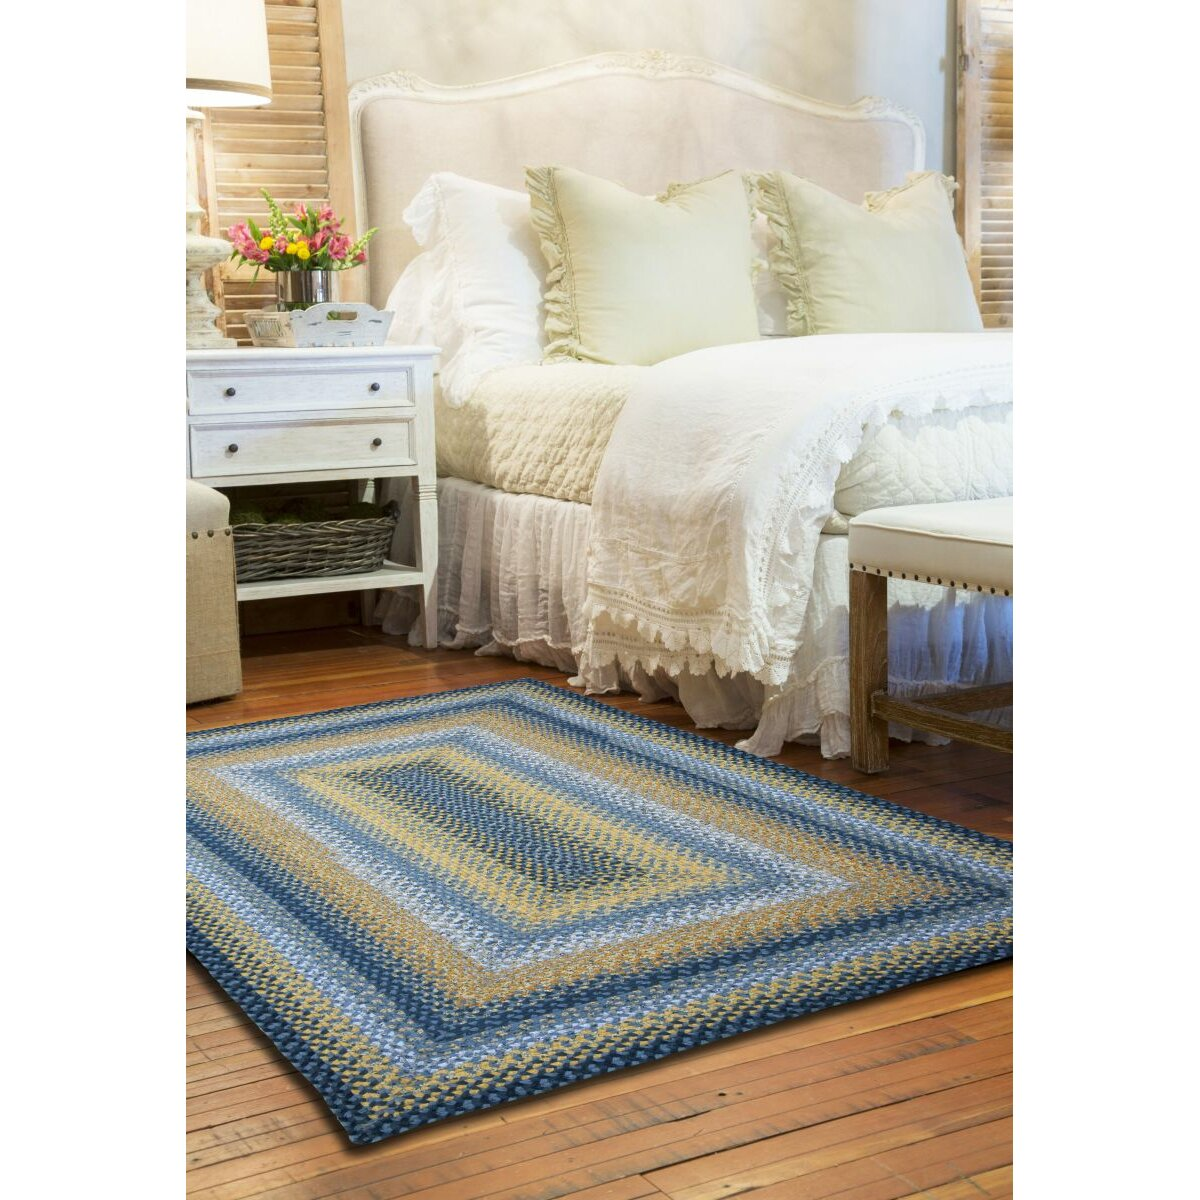 cotton braided sunflowers area rug - Homespice Decor